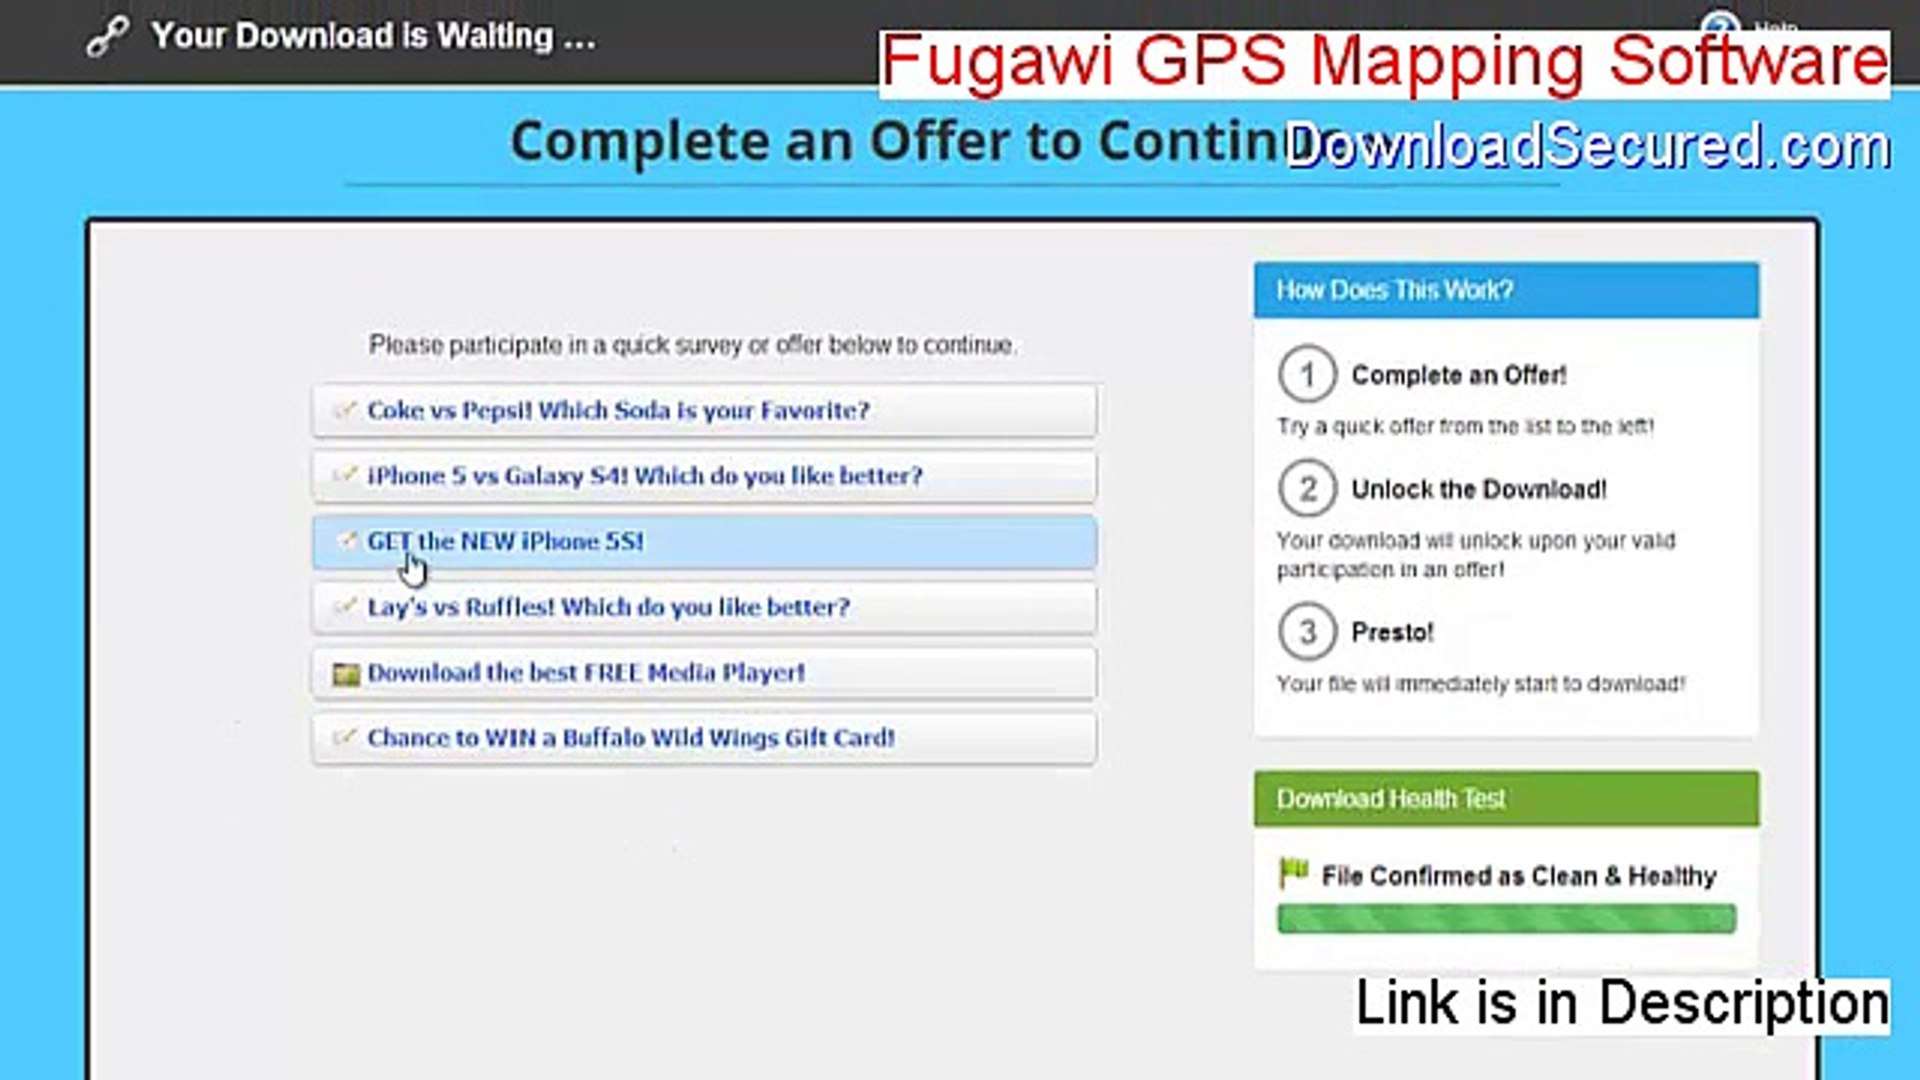 Fugawi GPS Mapping Software Download - Free of Risk Download 2015